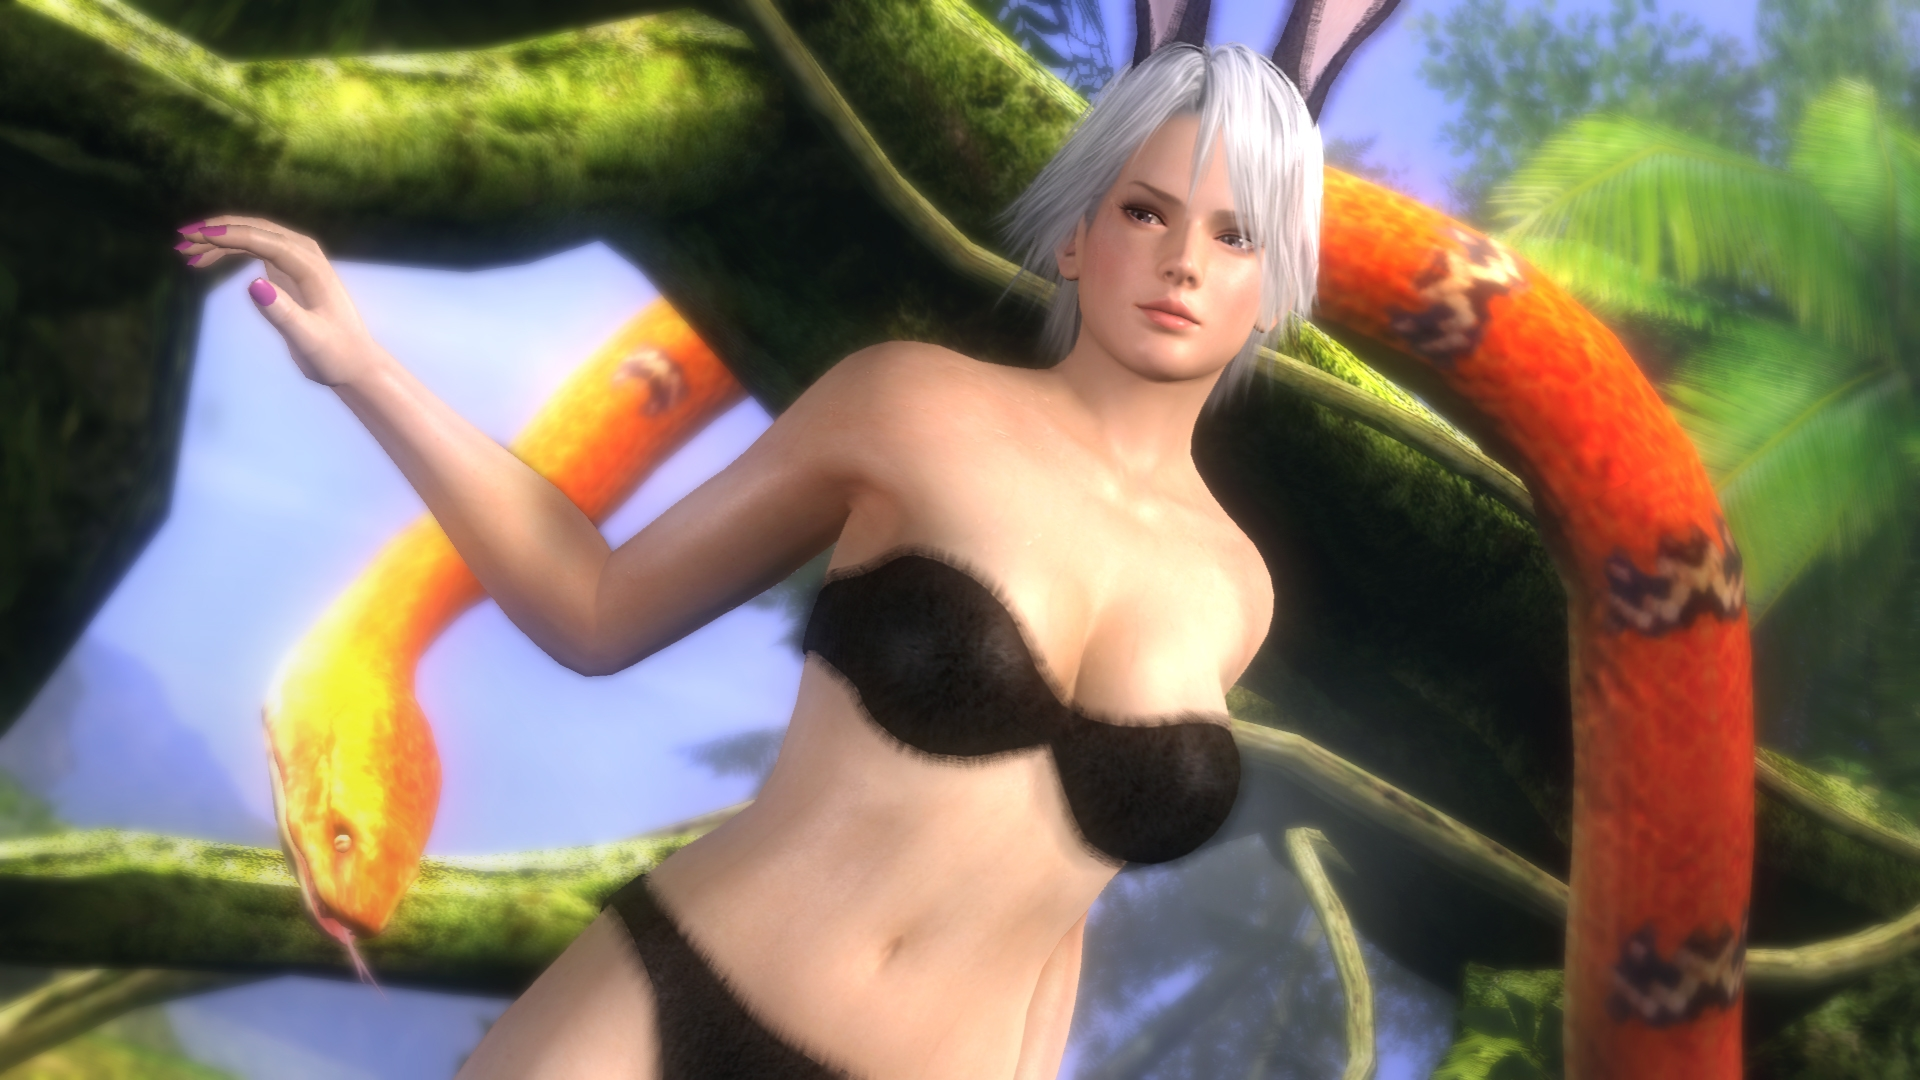 Dead or alive nude fucking nsfw photos